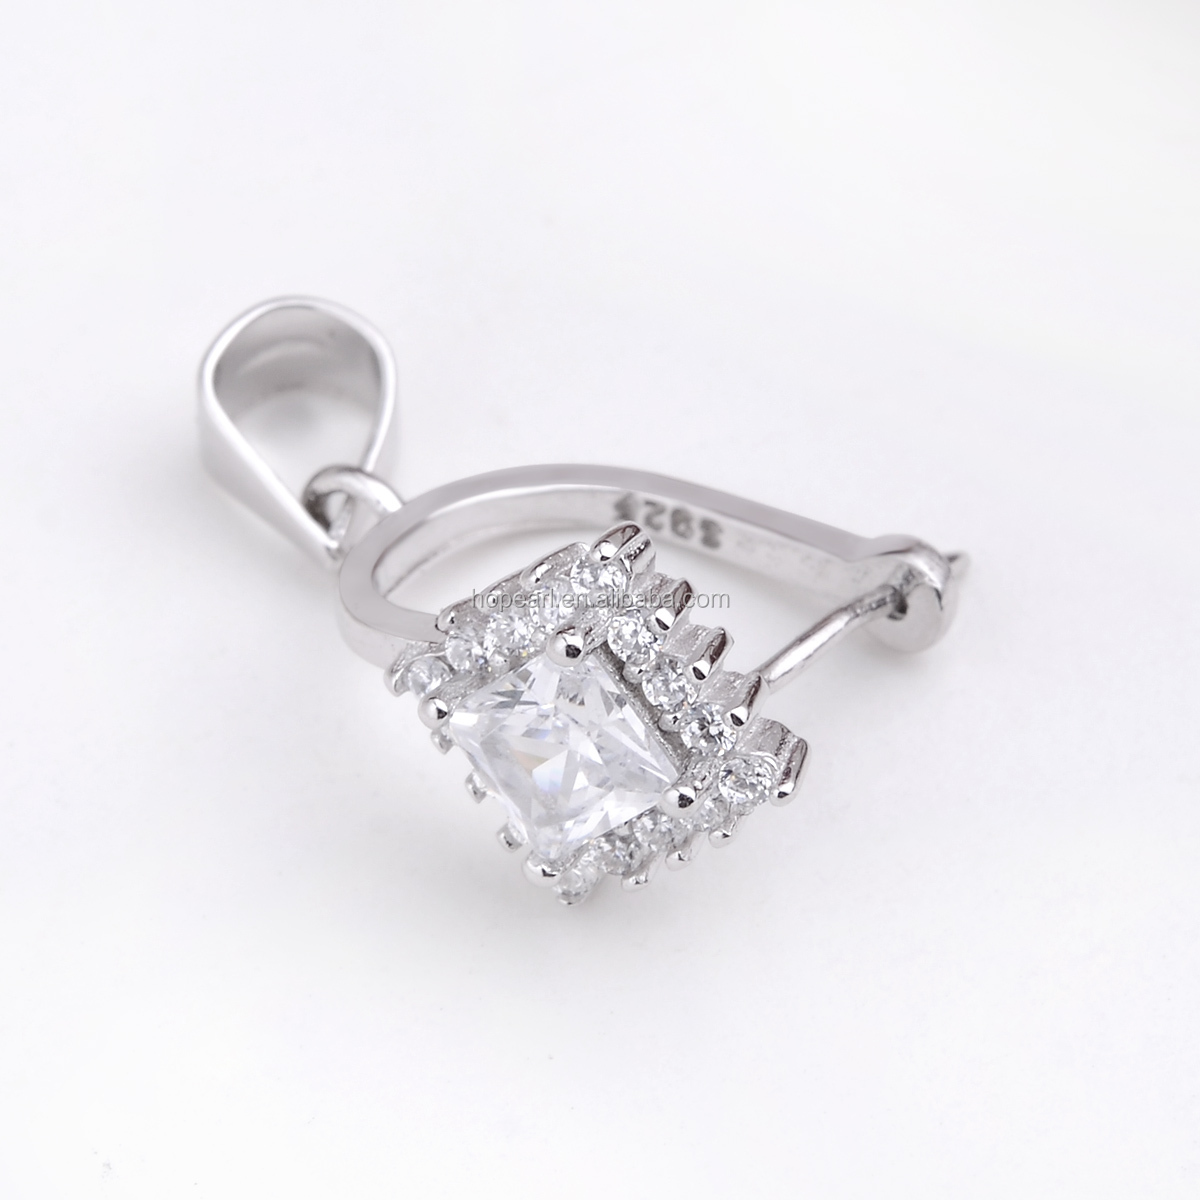 SSP235 Square Zircons 925 Silver Pendants Clasps Clips Bails Connectors Charm Bail Beads Jewelry Findings